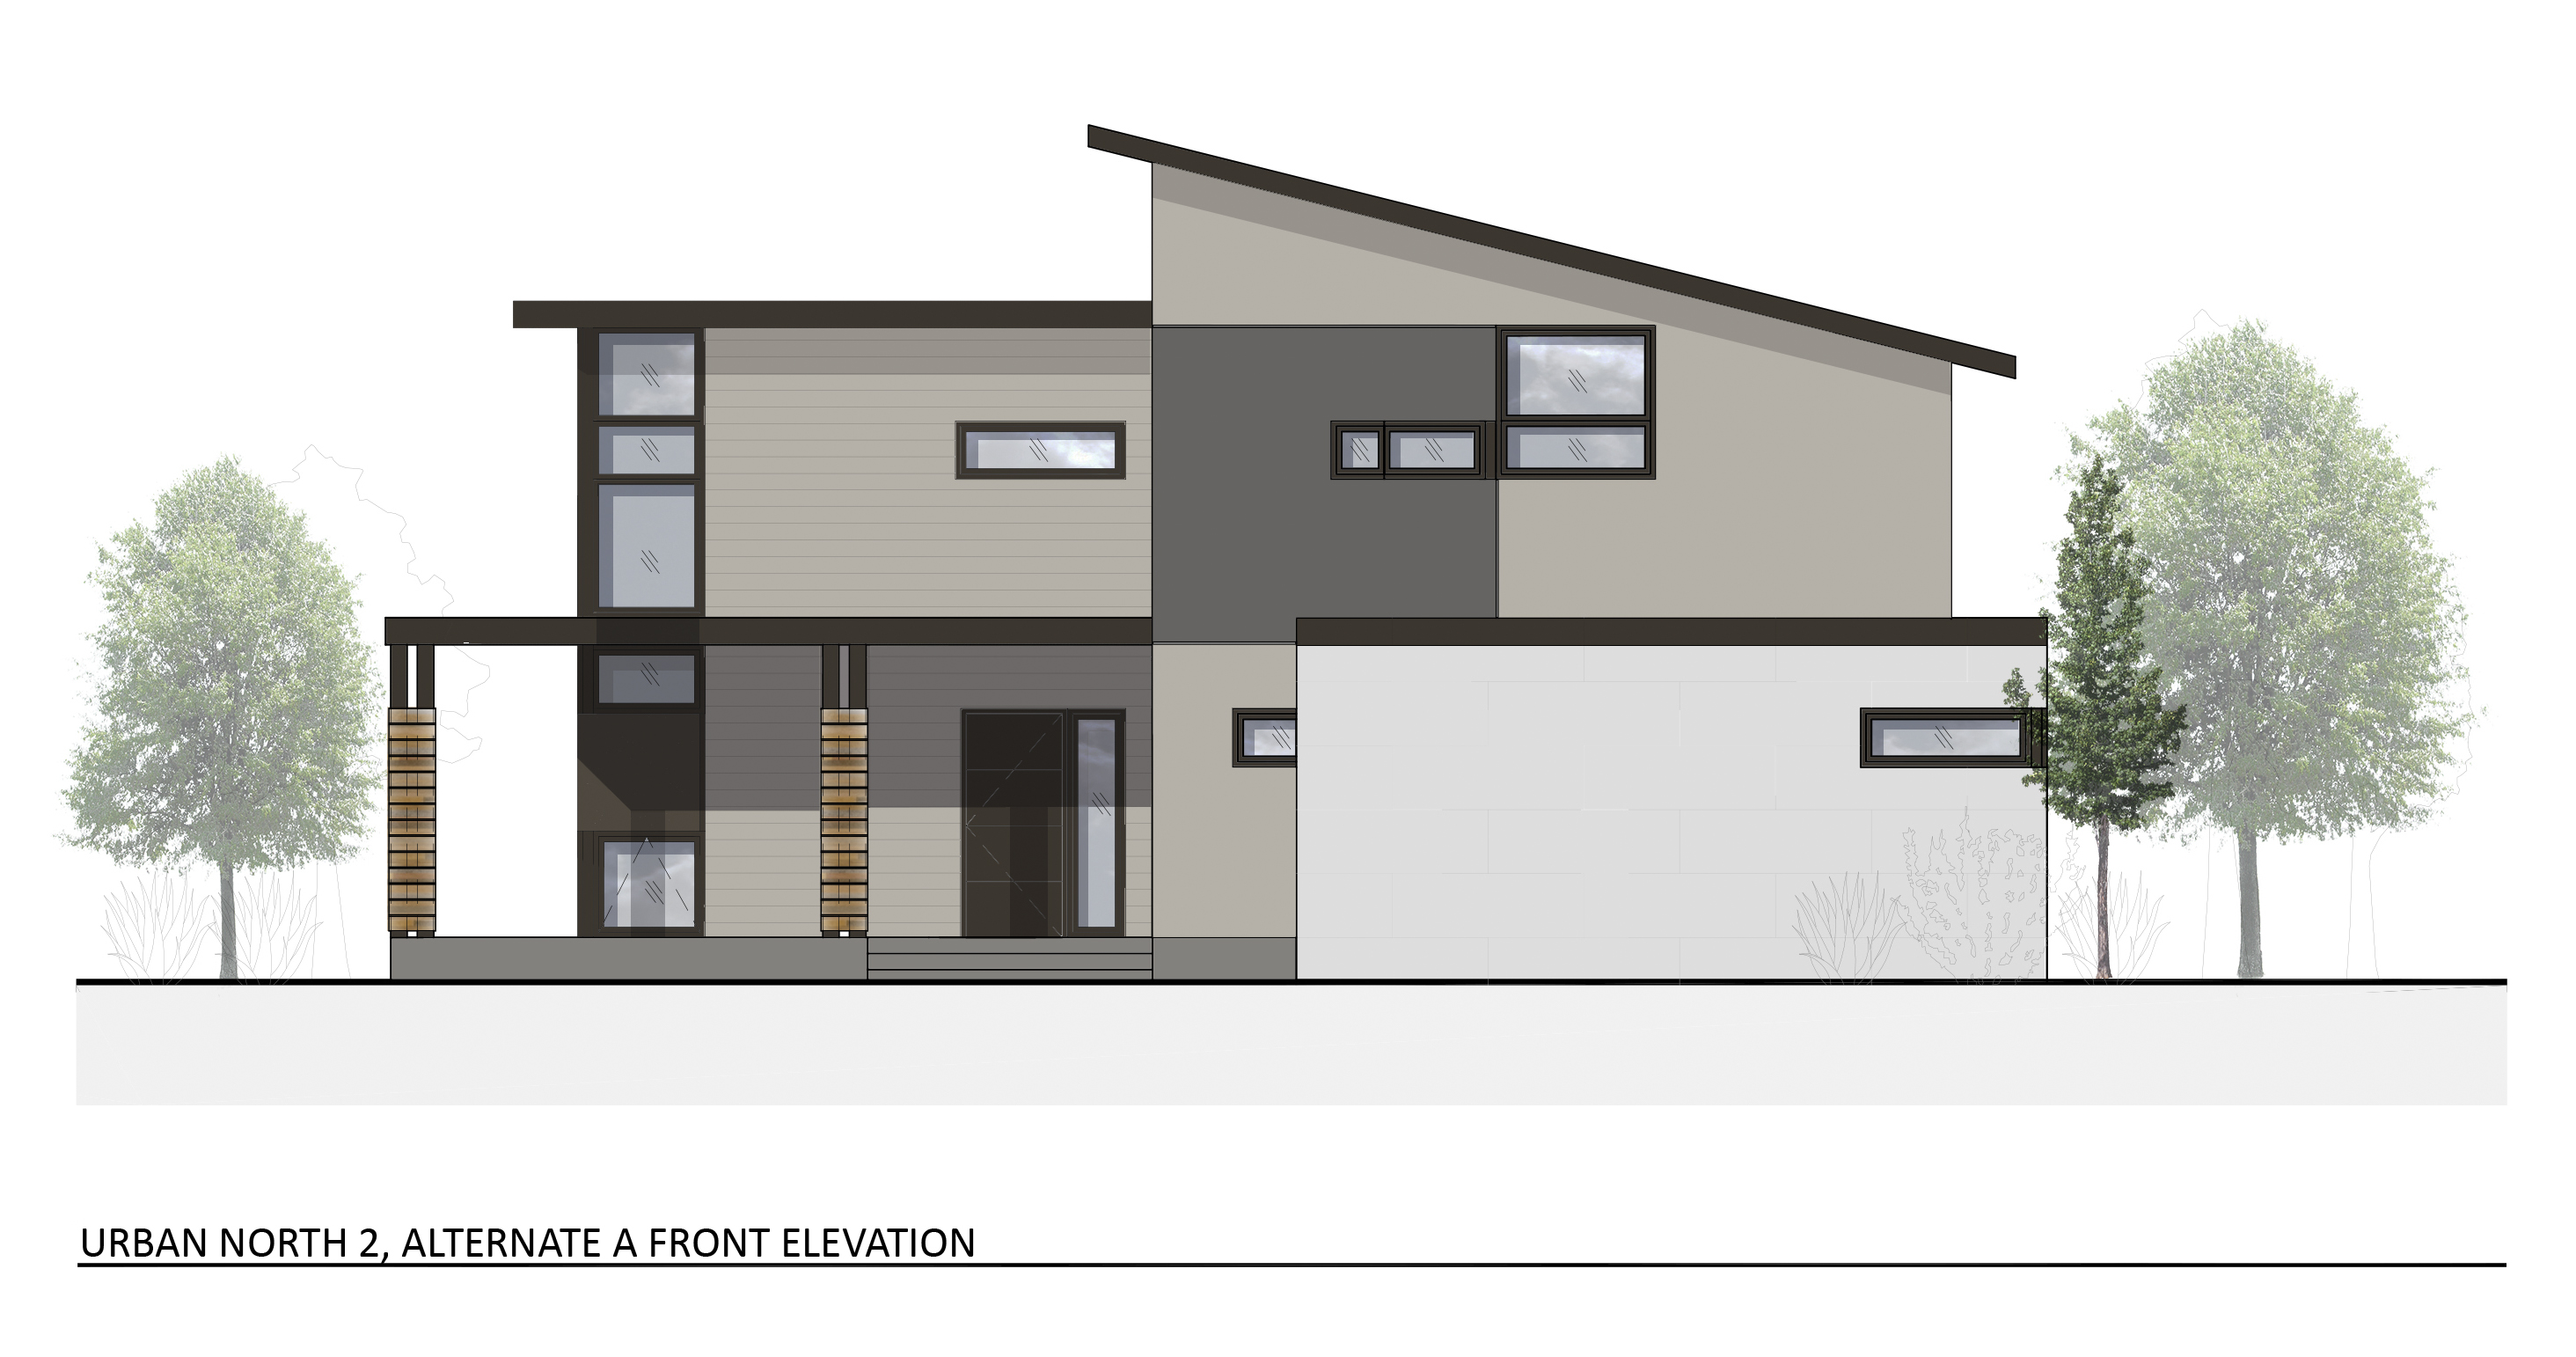 Plan En Elevation : Ground breaking urban north kansas city s new modern